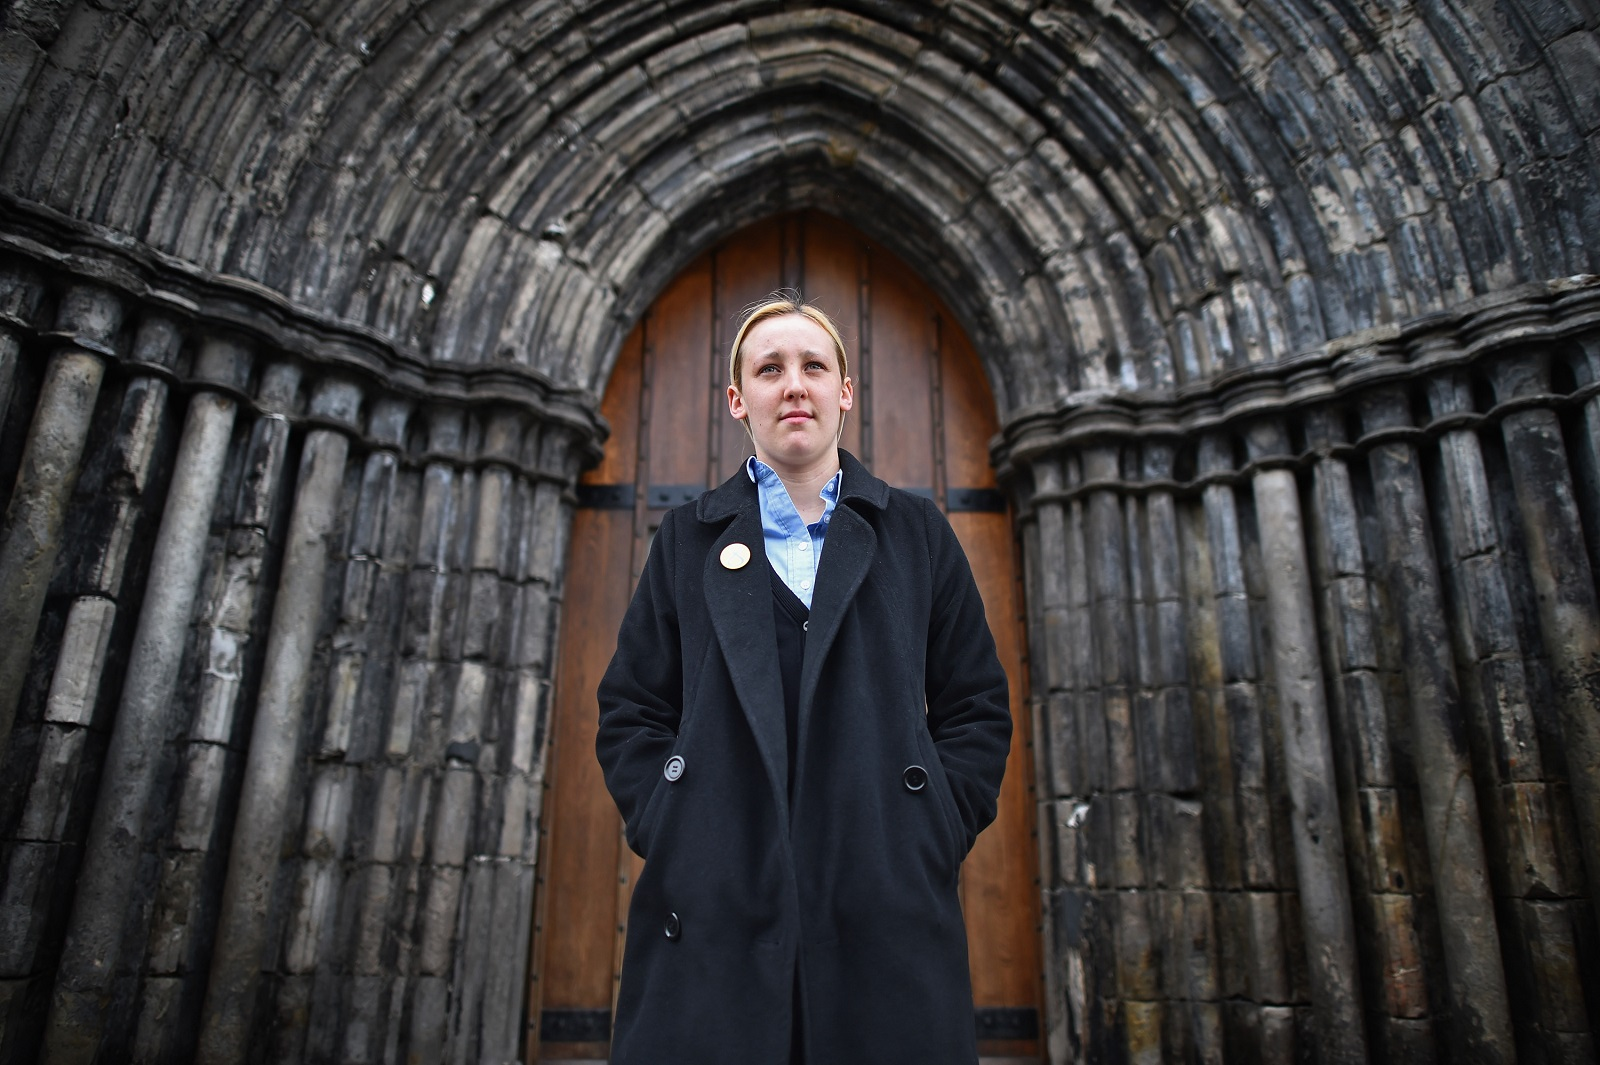 Mhairi Black of the SNP